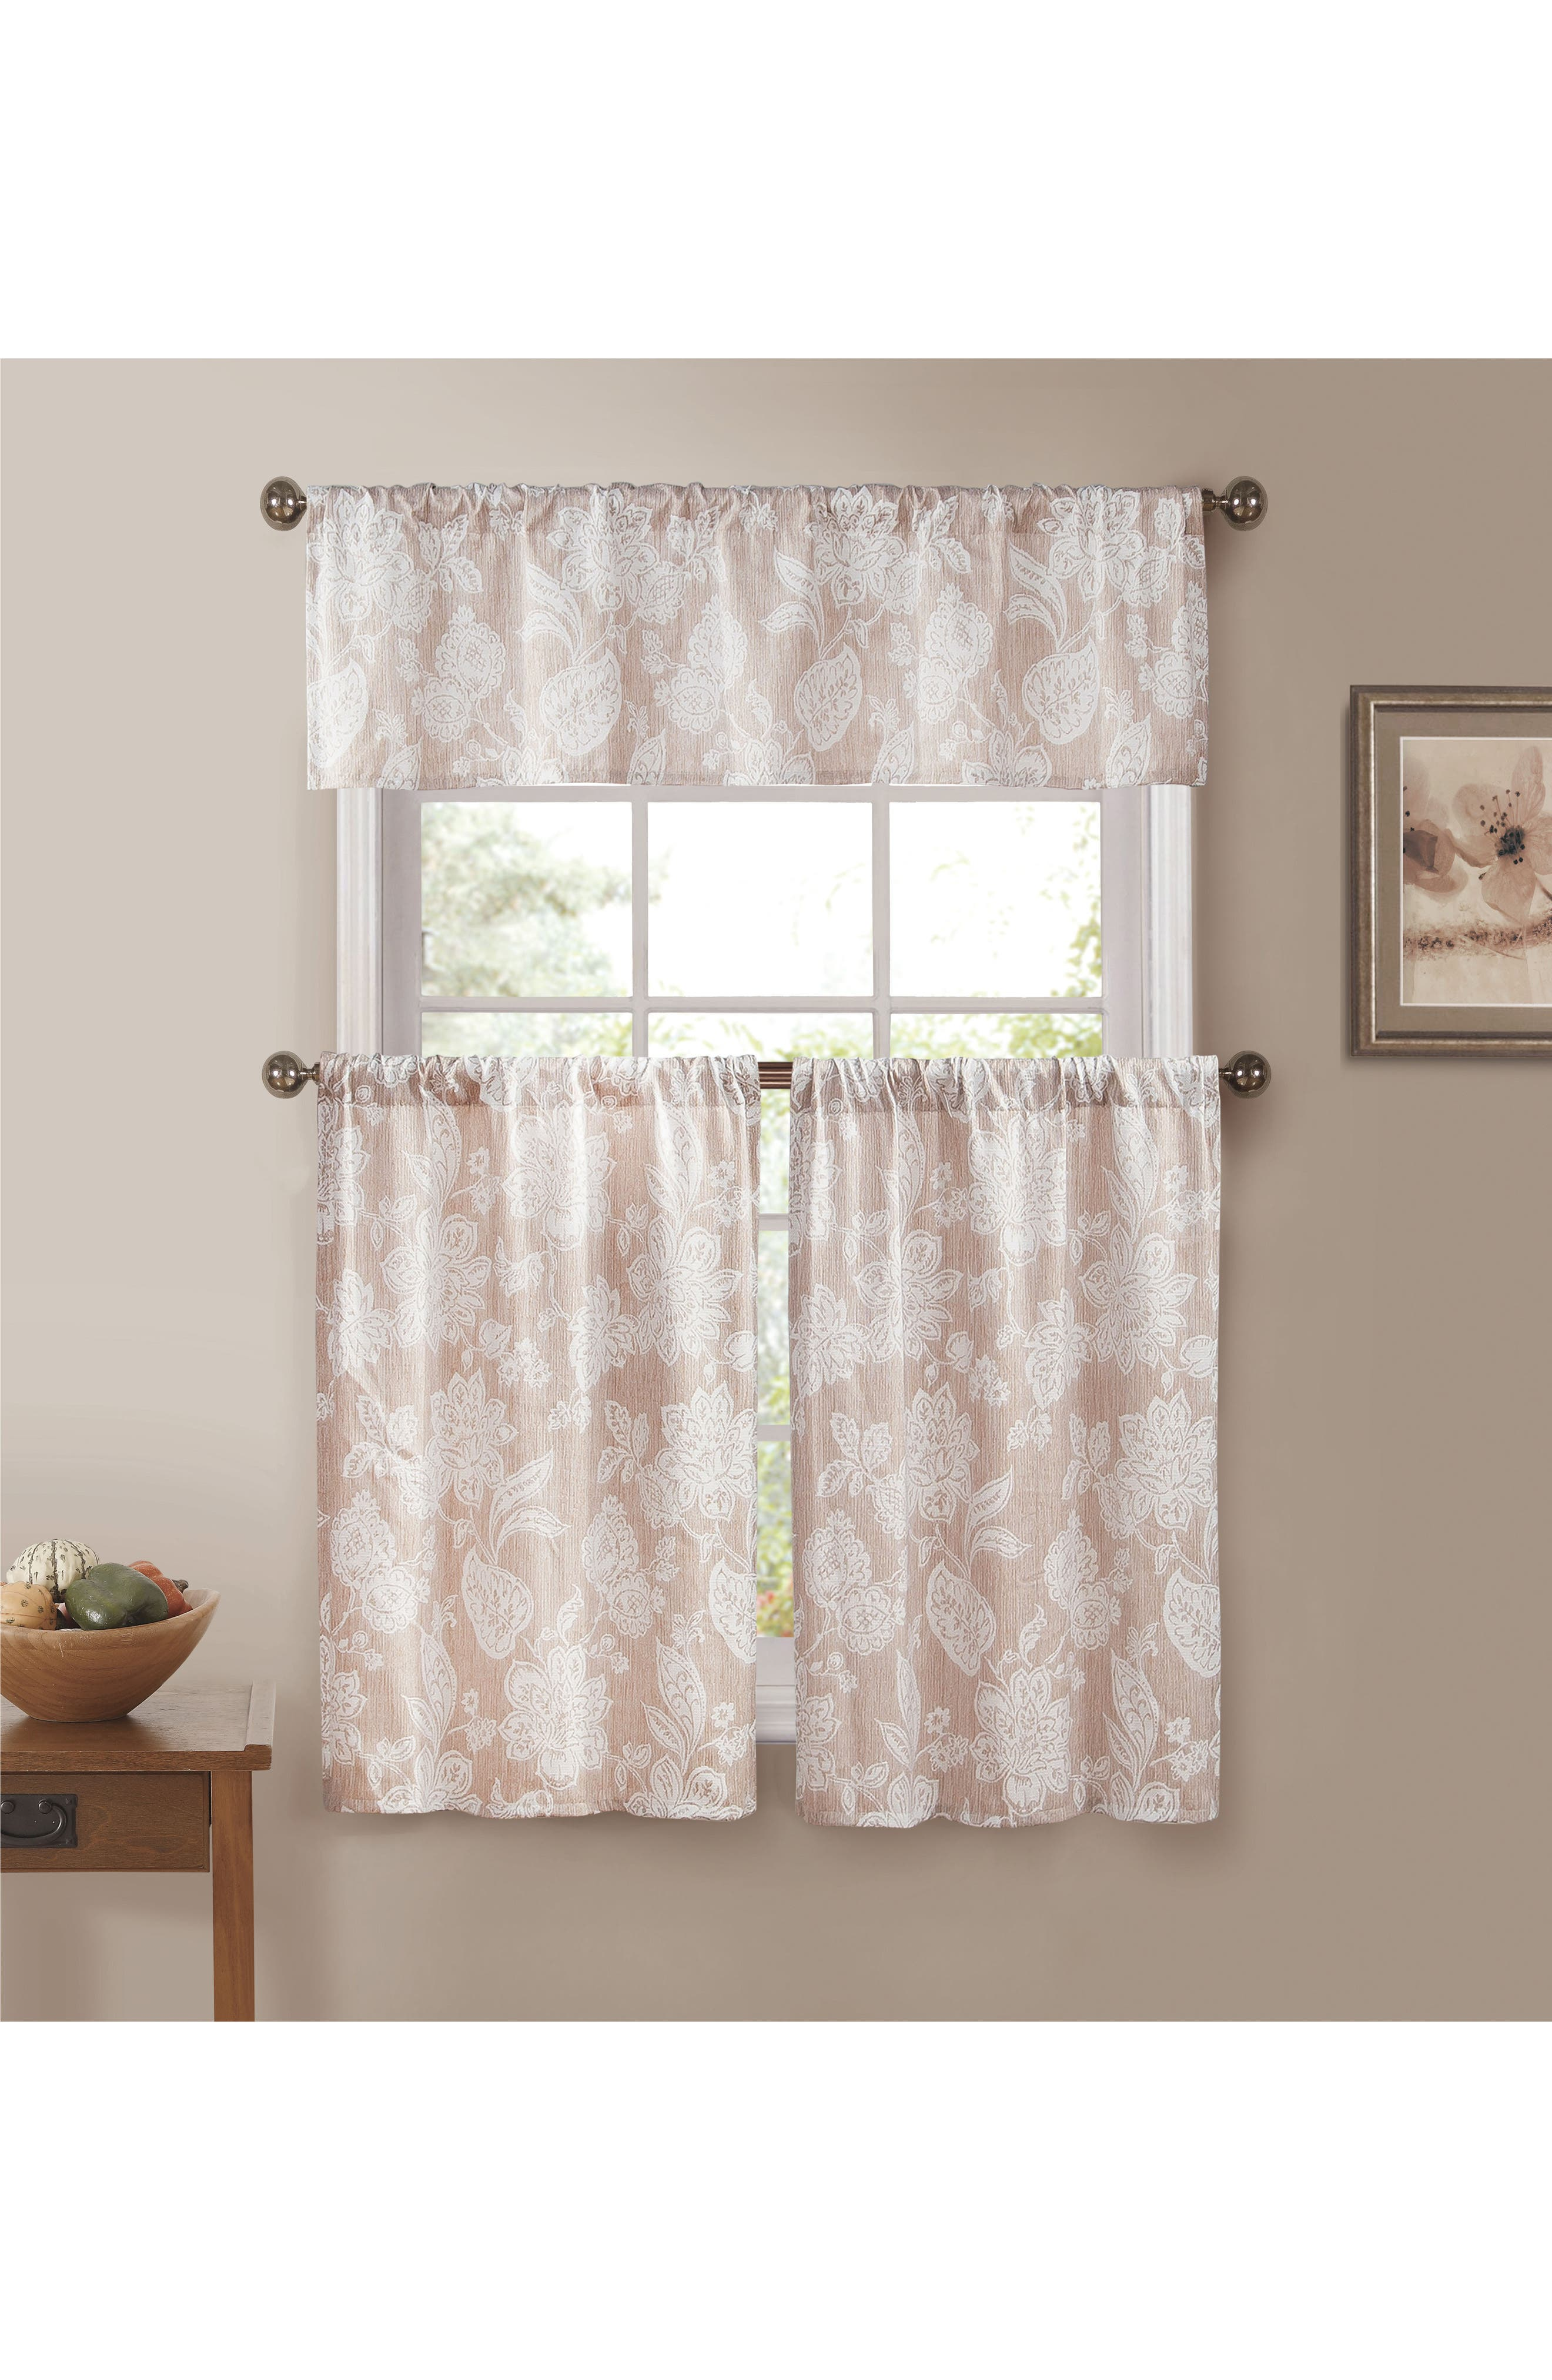 Main Image - Duck River Textile Ewva Set of 3 Tiered Jacquard Small Pole Top Window Panels